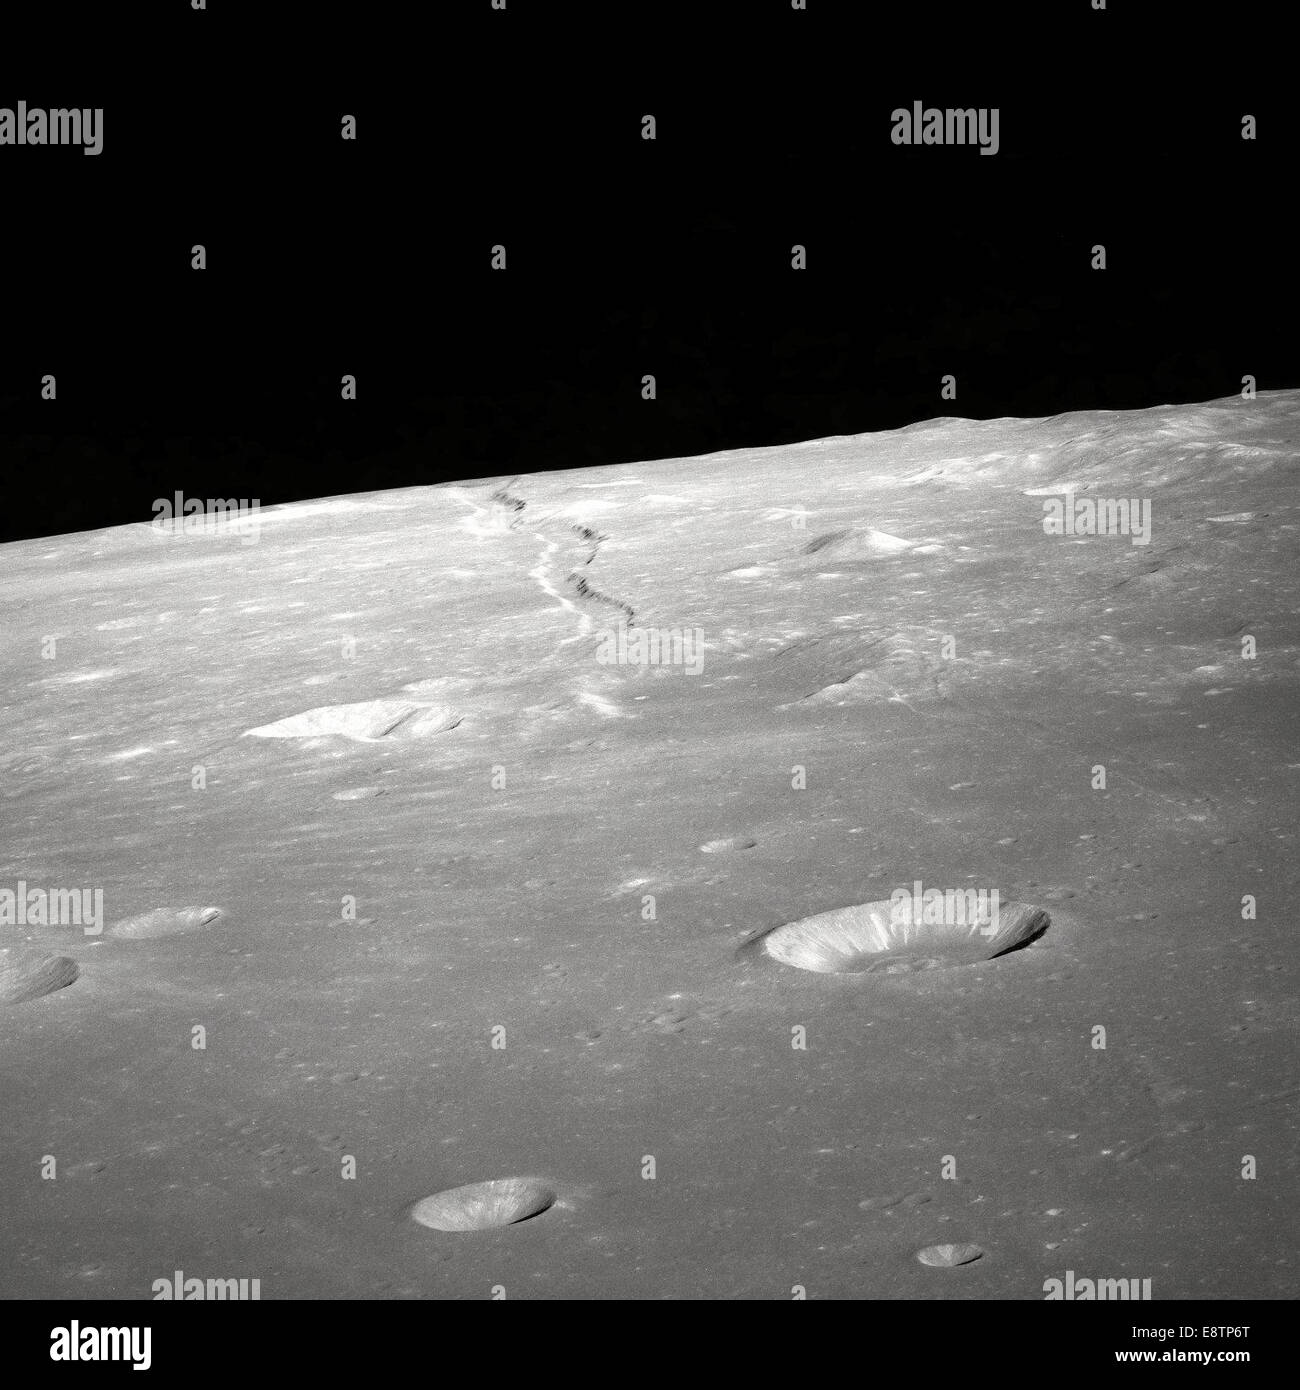 Apollo 10 untouched photographic archive, this is the complete unedited collection from the Apollo Mission - Stock Image